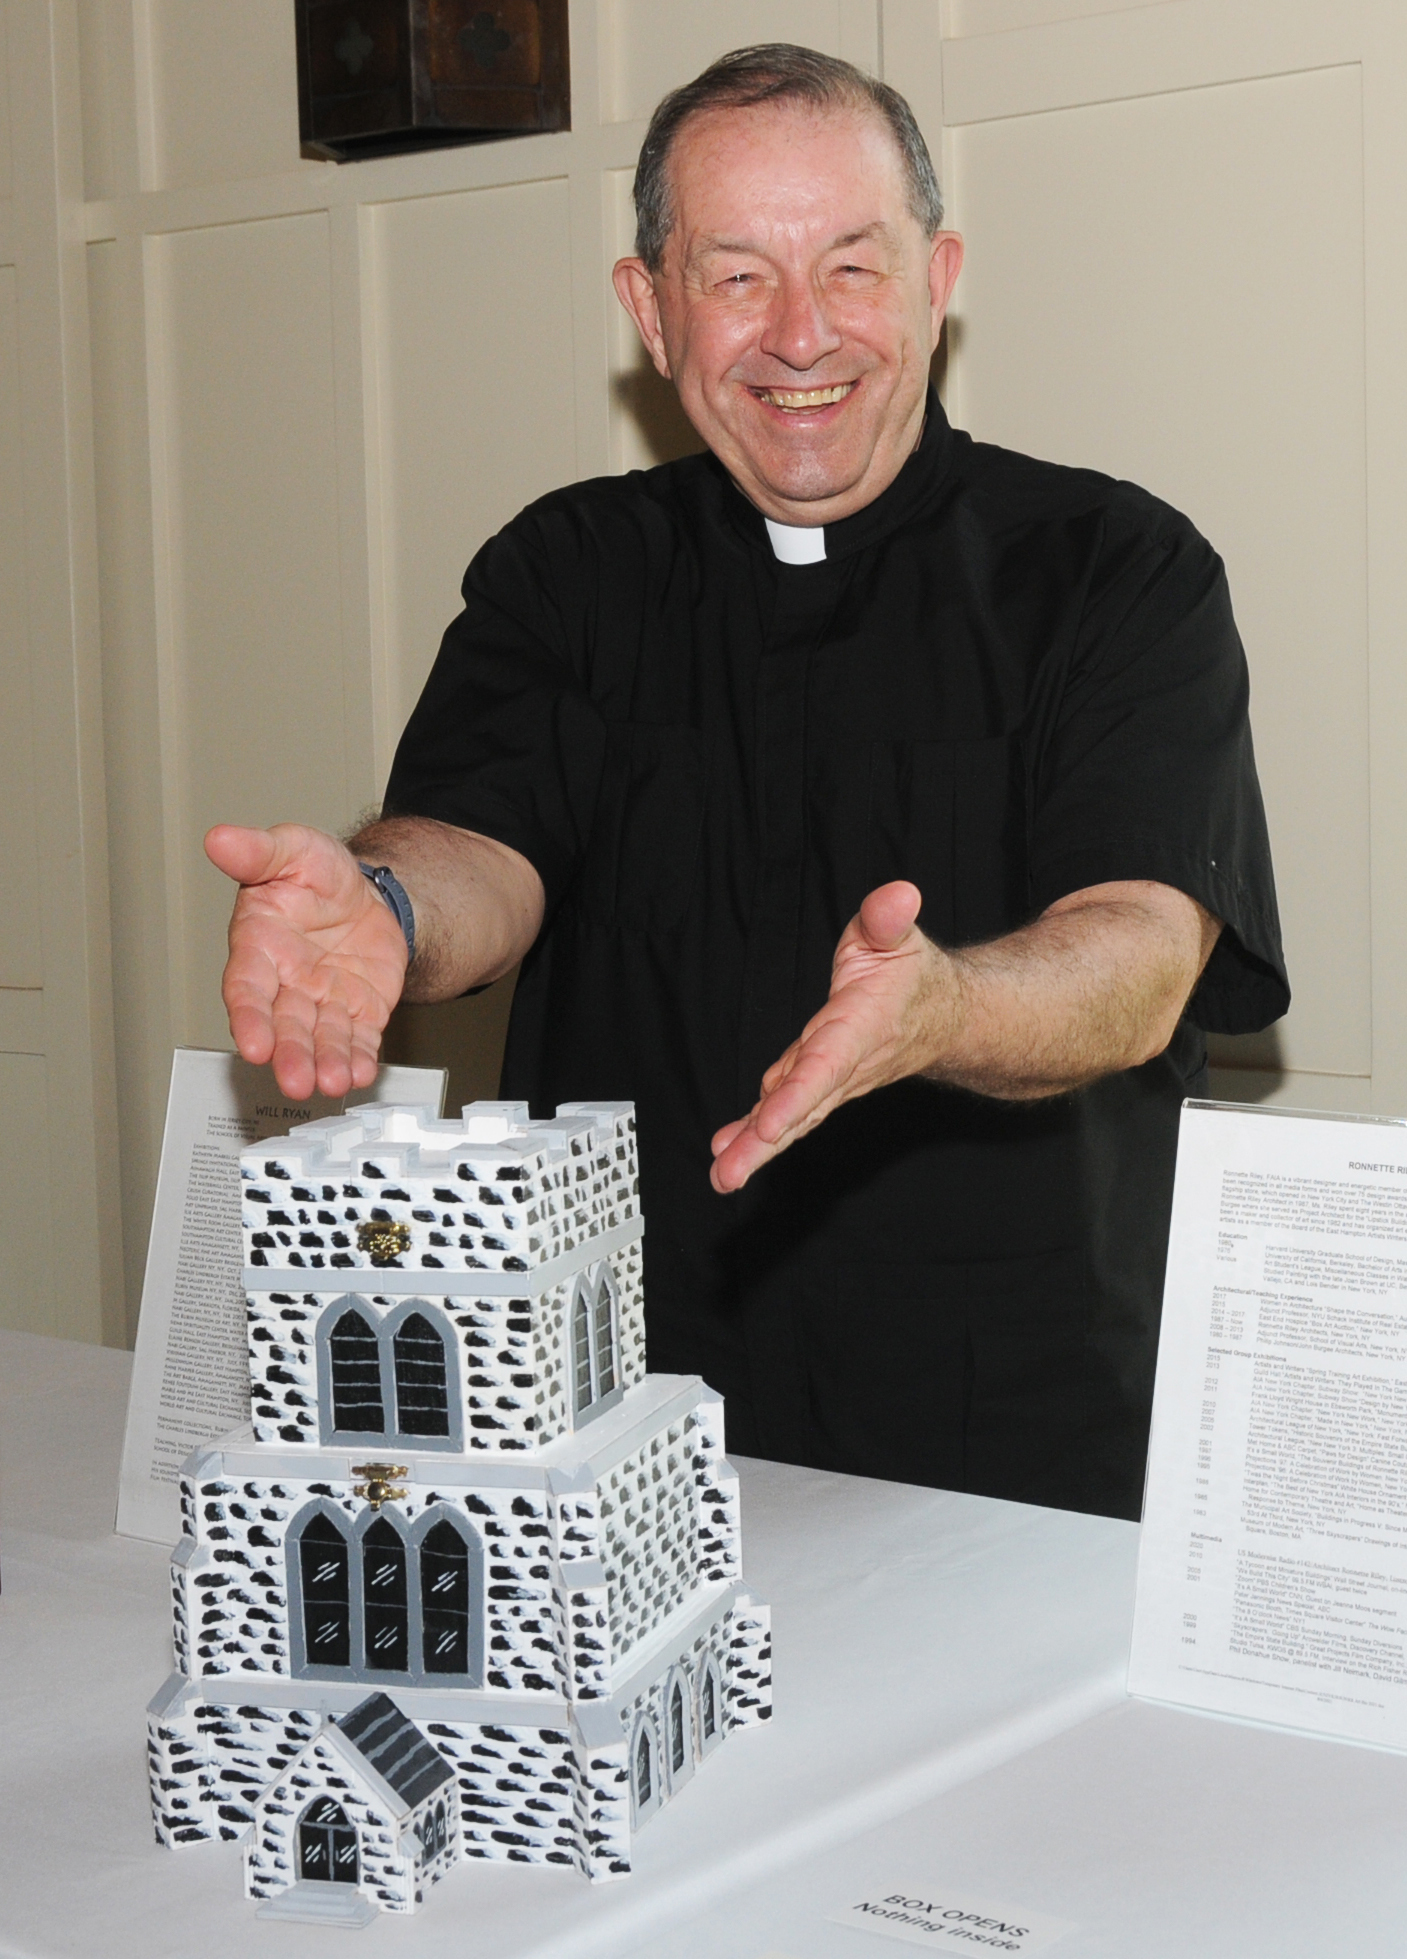 The Very Rev. Denis C. Brunelle at the East End Hospice Art Box Auction preview on Thursday evening at at Hoie Hall in St. Luke's Episcopal Church in East Hampton. More than 80 decorated boxes were auctioned on Saturday to benefit East End Hospice.    RICHARD LEWIN